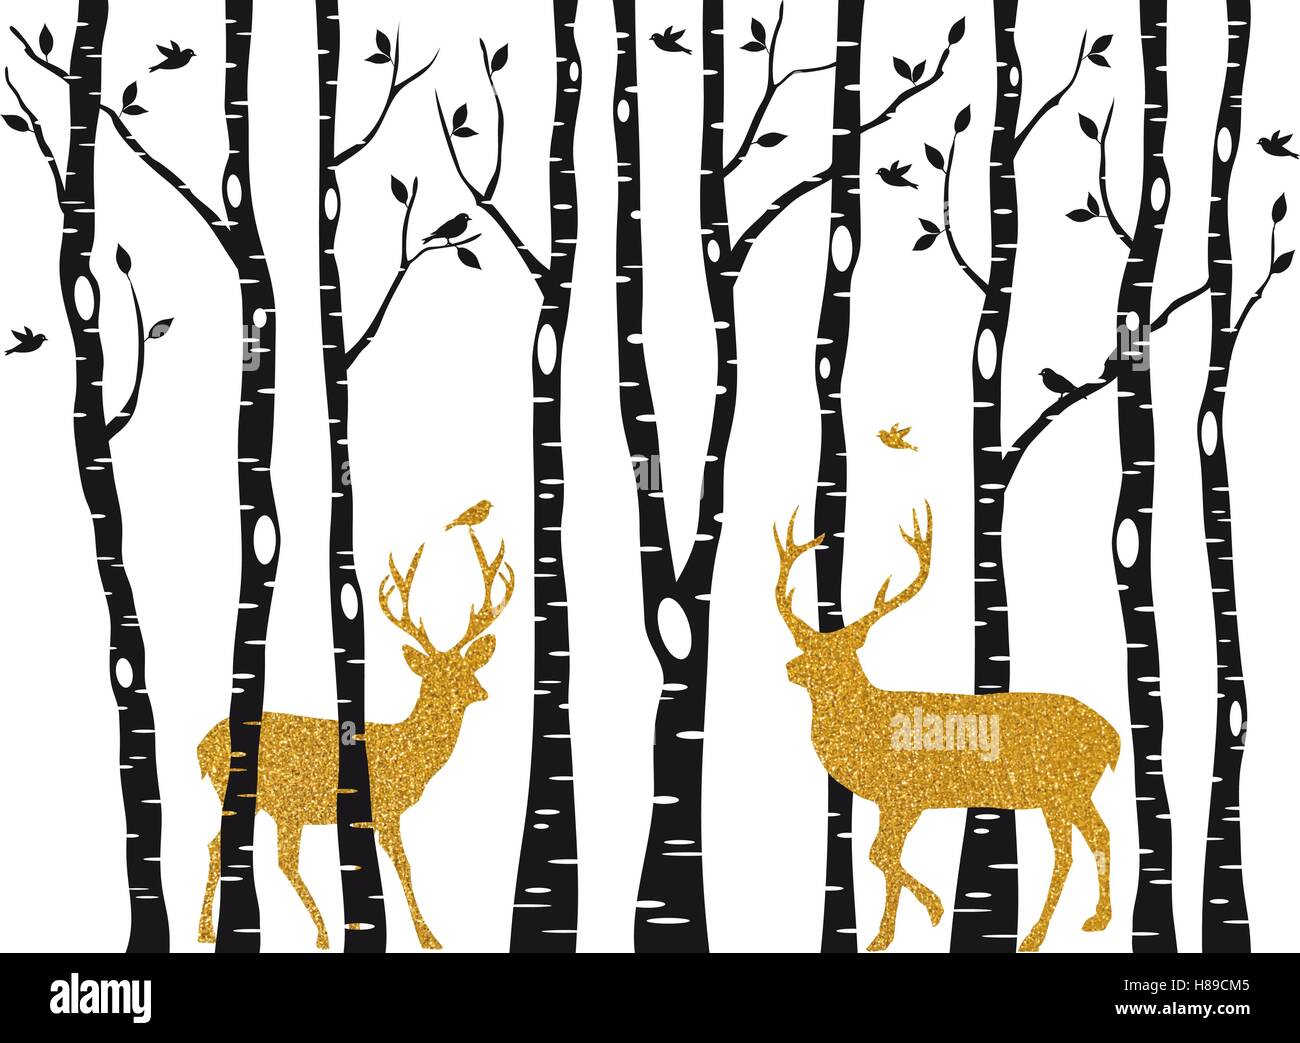 Christmas card with golden reindeer in birch trees forest on white backround, vector illustration - Stock Vector